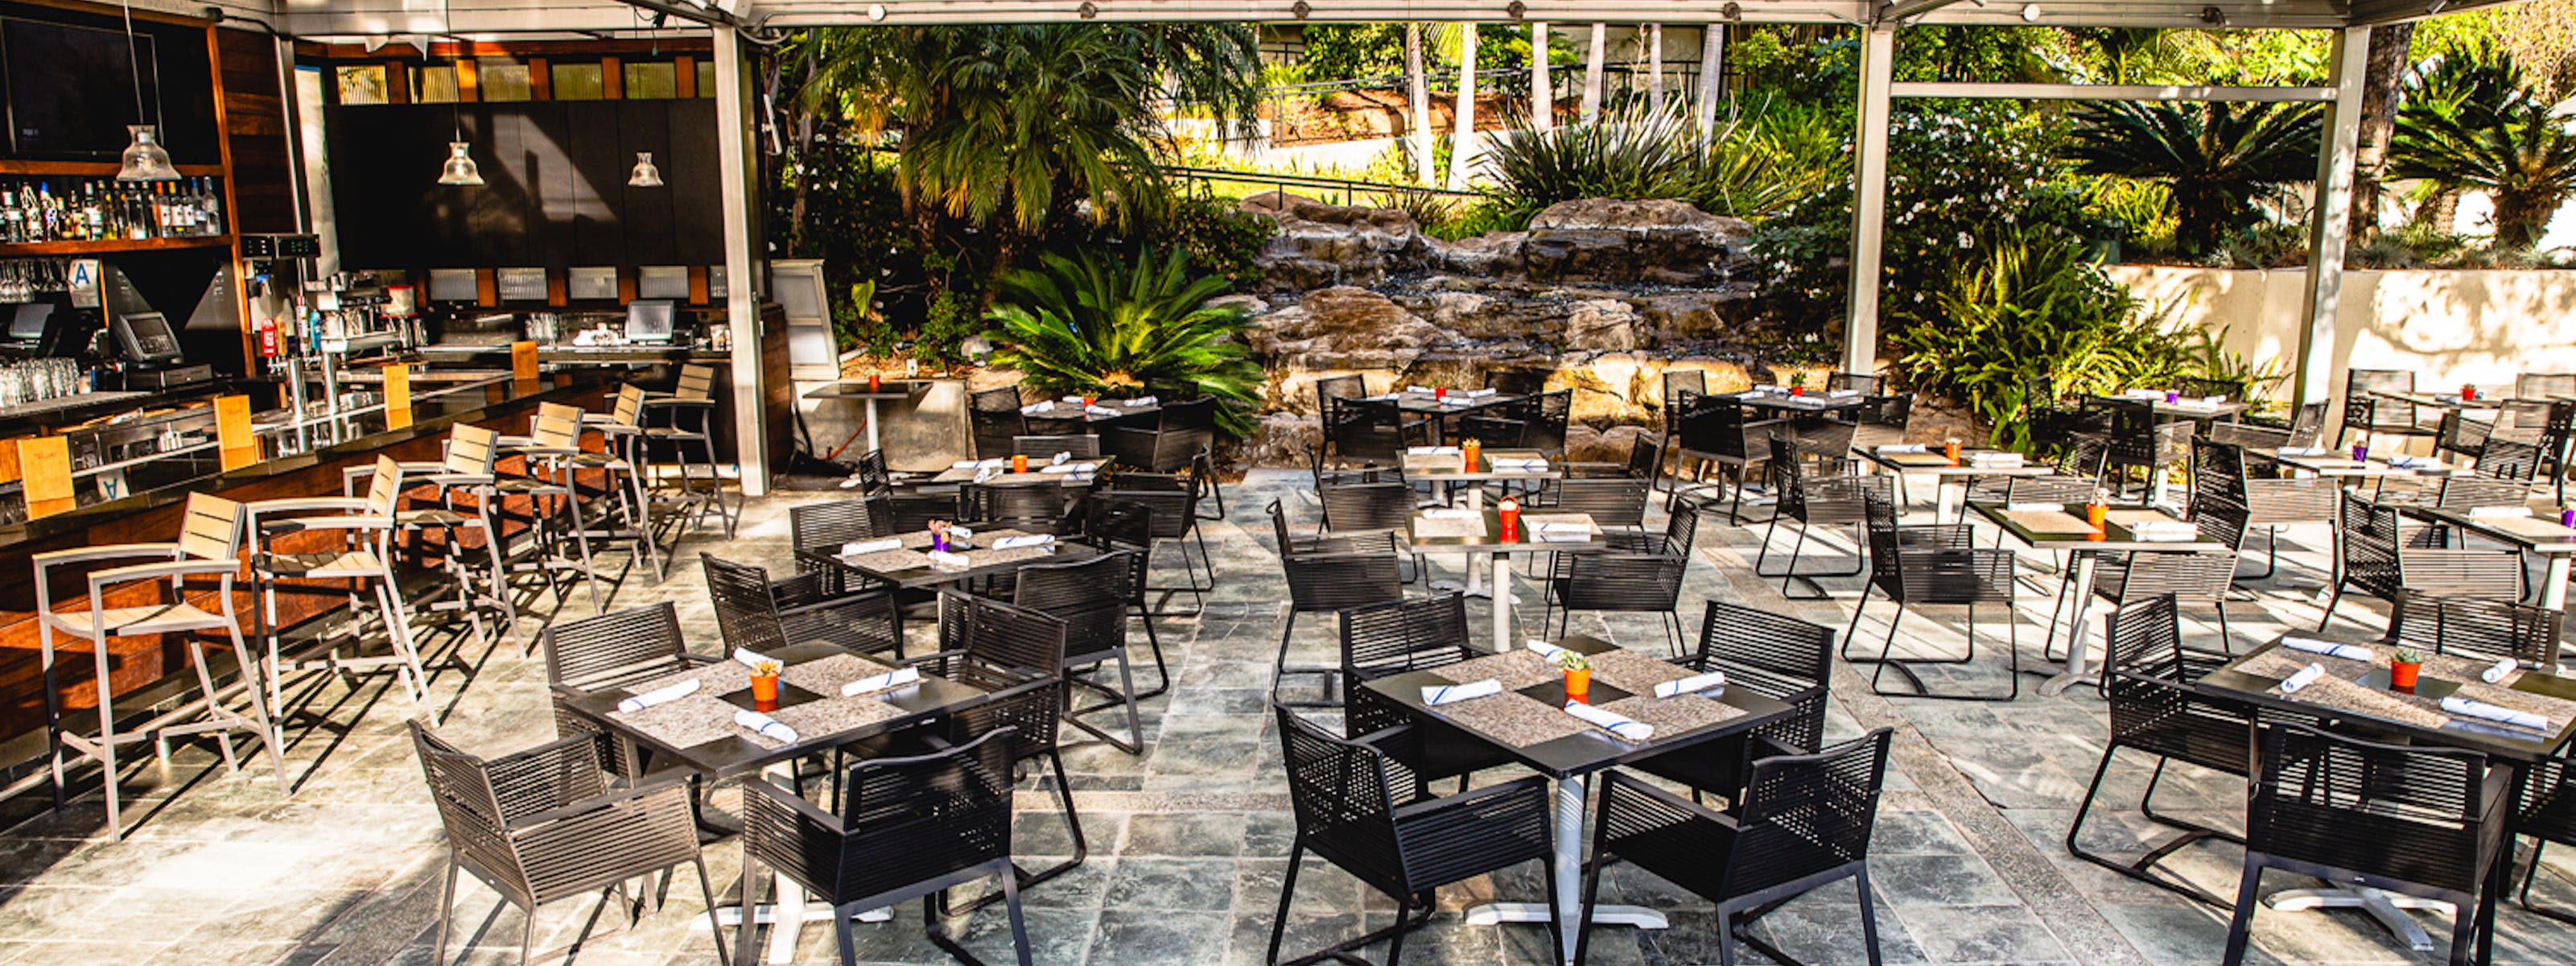 La Restaurants Where You Can Eat Outside Today Los Angeles The Infatuation